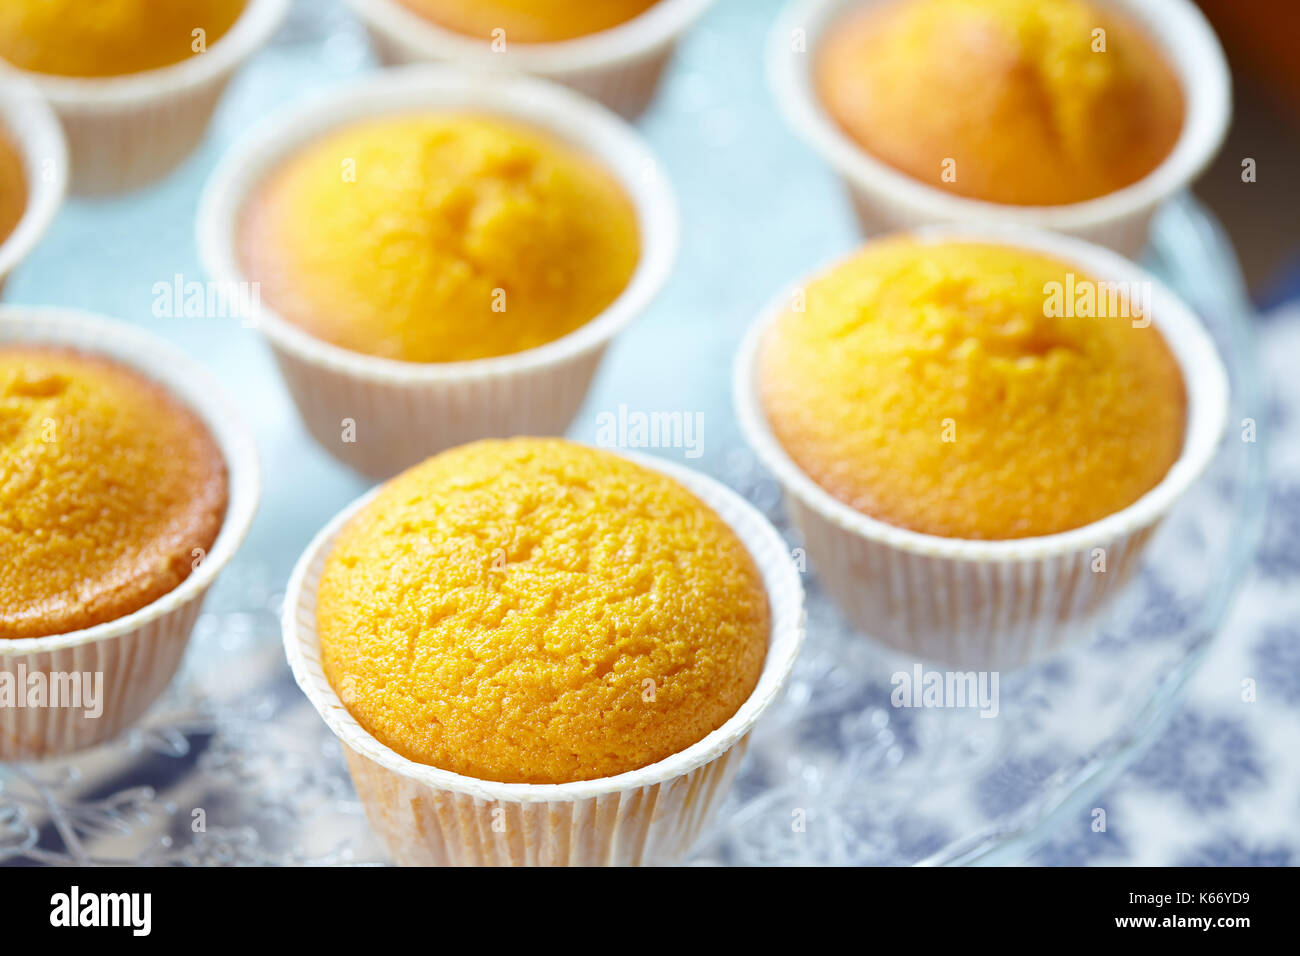 Closeup view of cake stand with Italian muffins called Camilla, nade with carrot and almonds, selective focus. - Stock Image